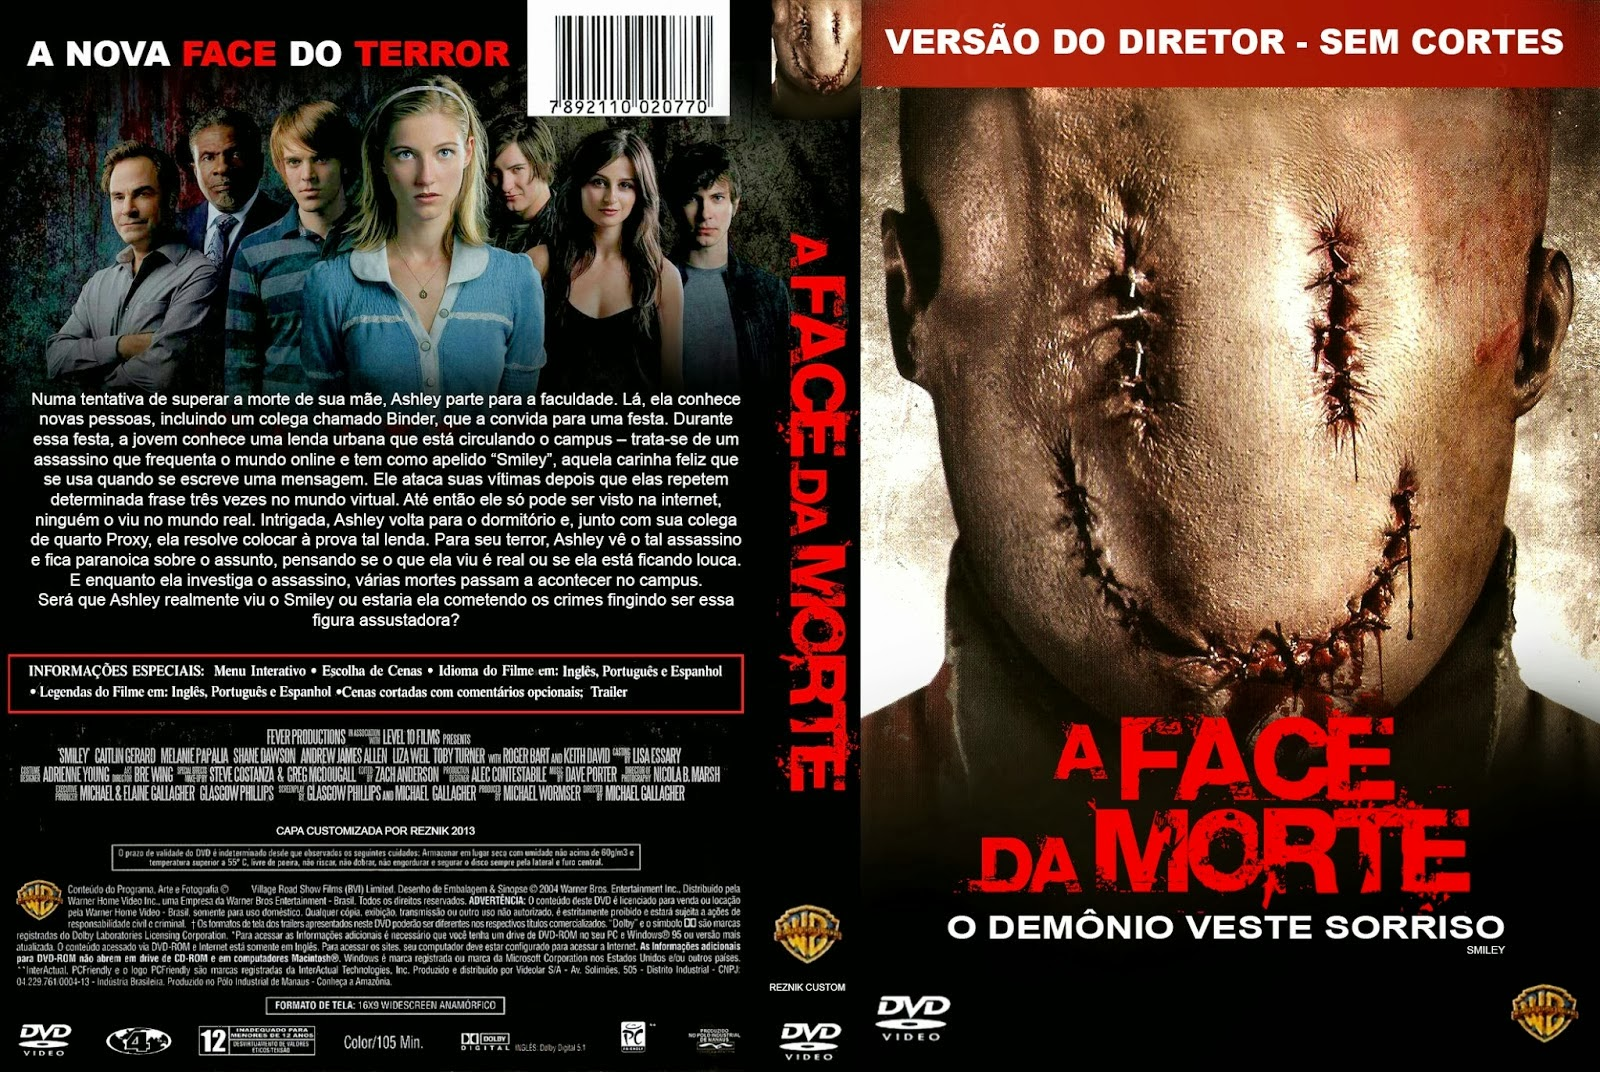 A Face Da Morte DVD Capa